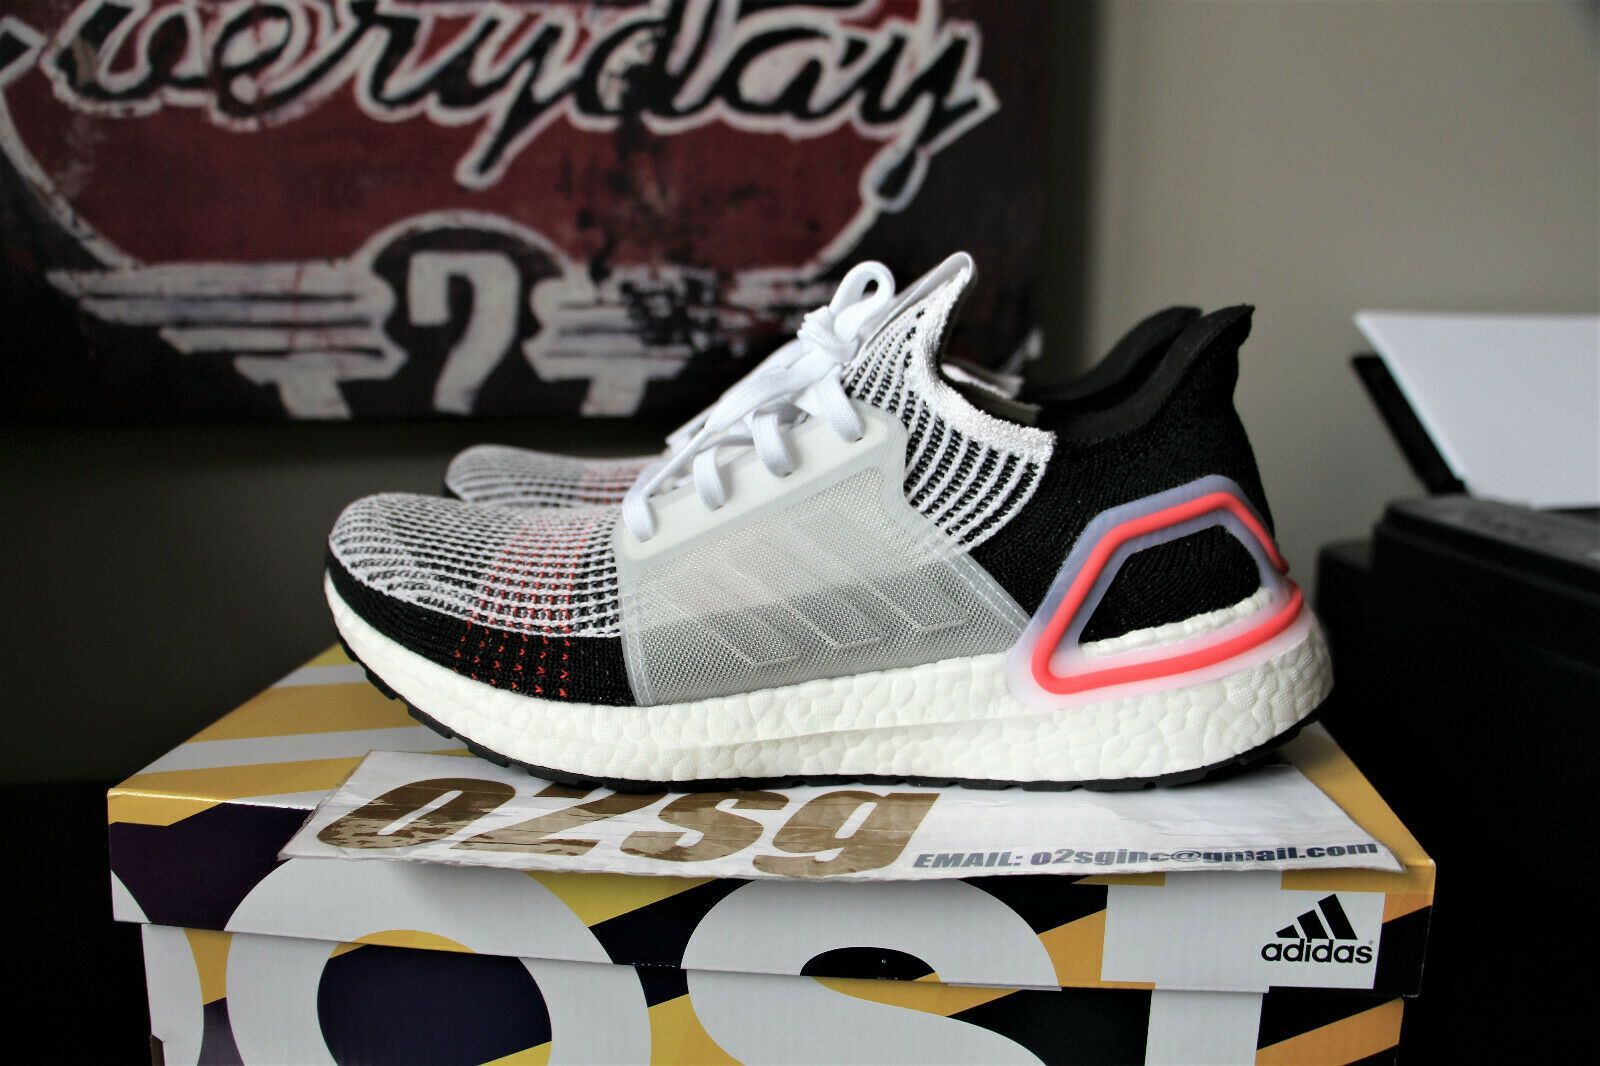 c2cfa219a373c Details about Adidas Ultra Boost 2019 Running Training Shoes B37703 ...